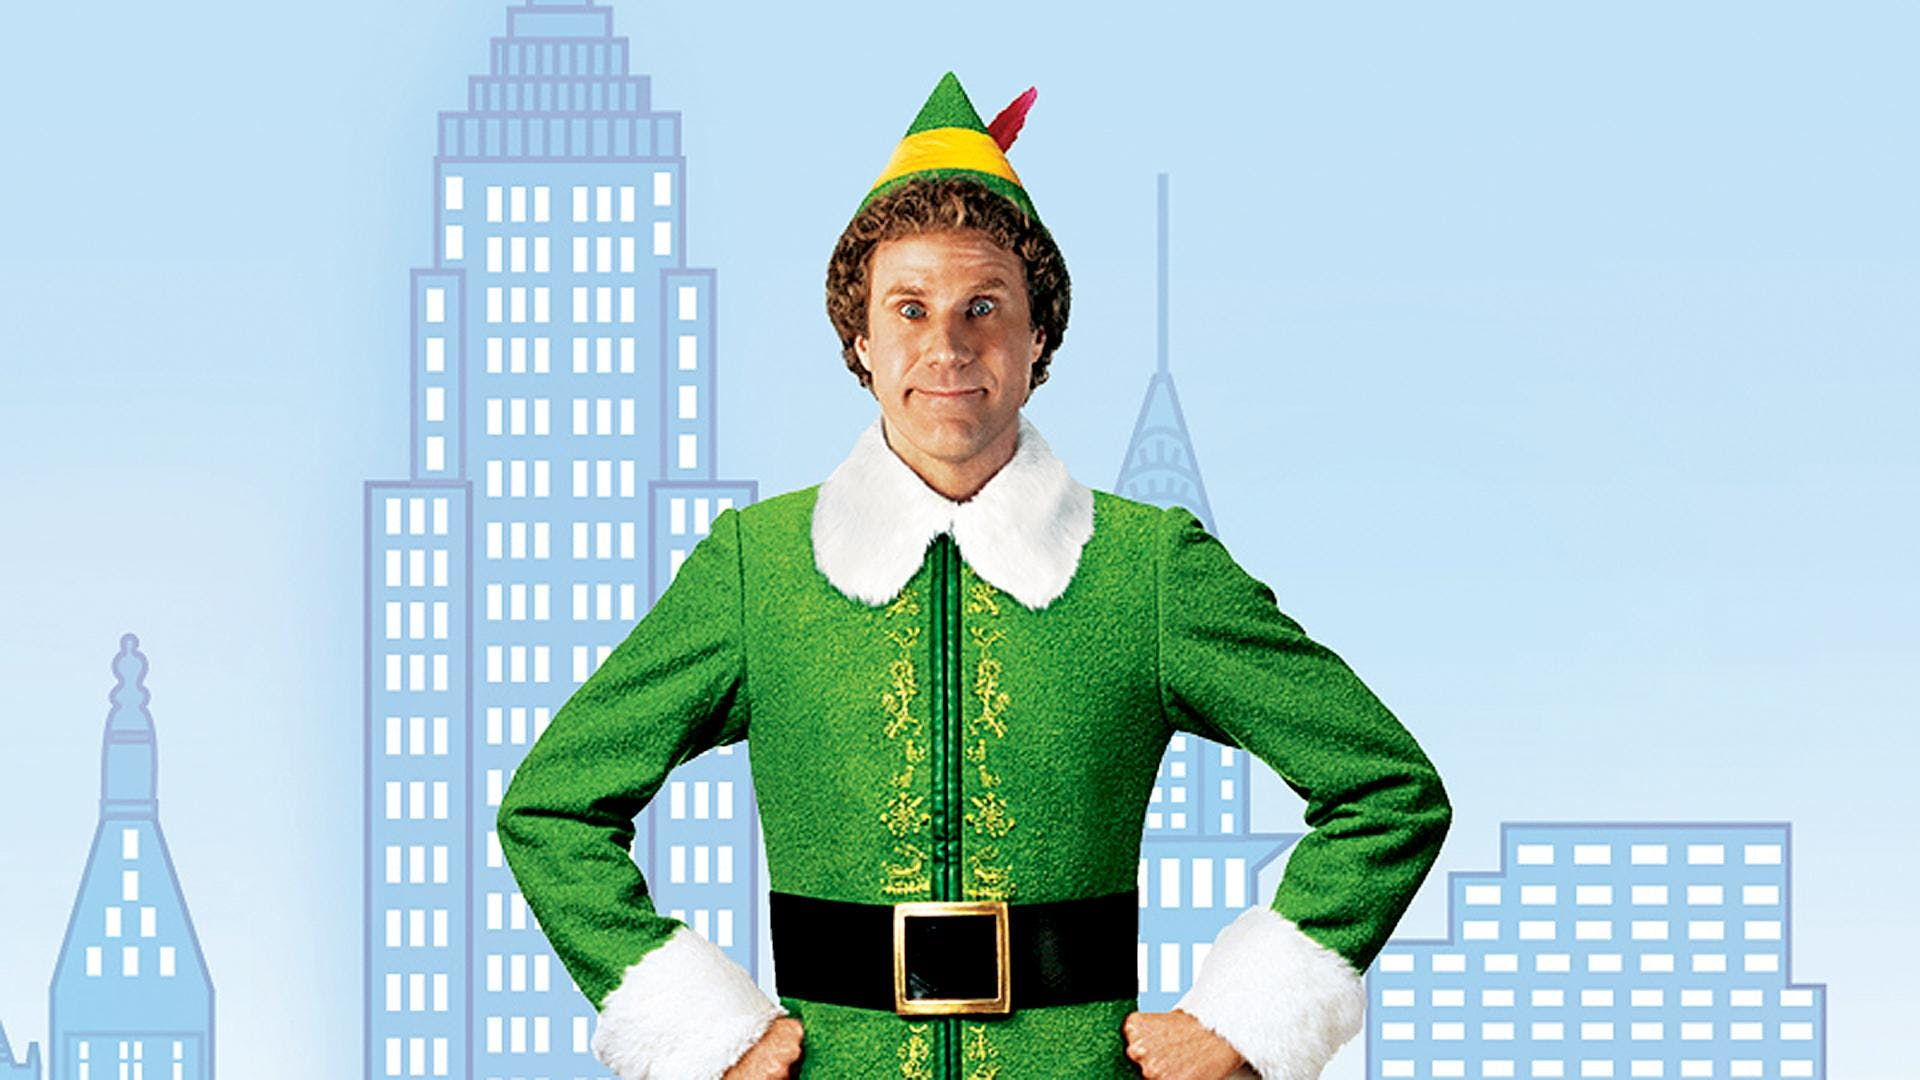 Cinema Night: Elf